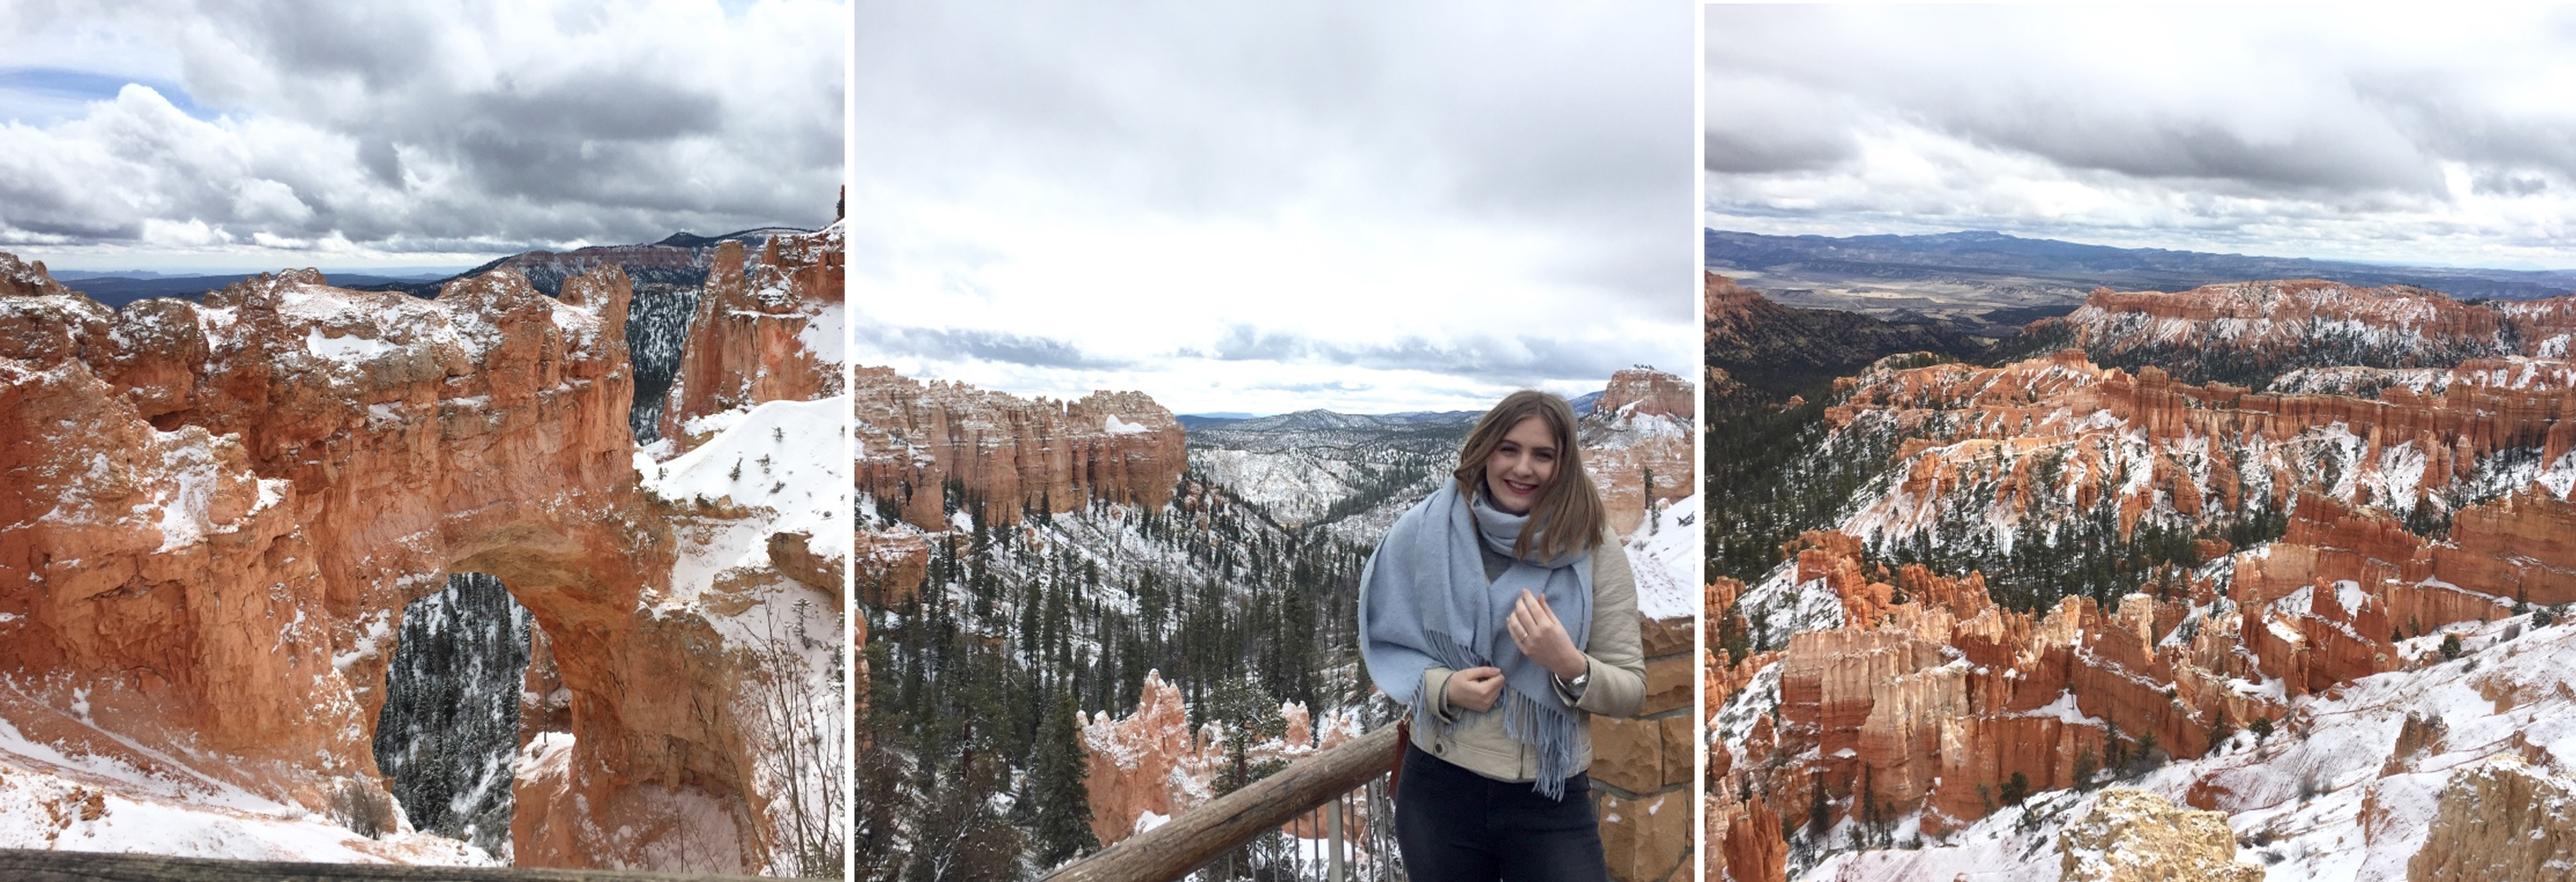 road trip west amerika bryce canyon